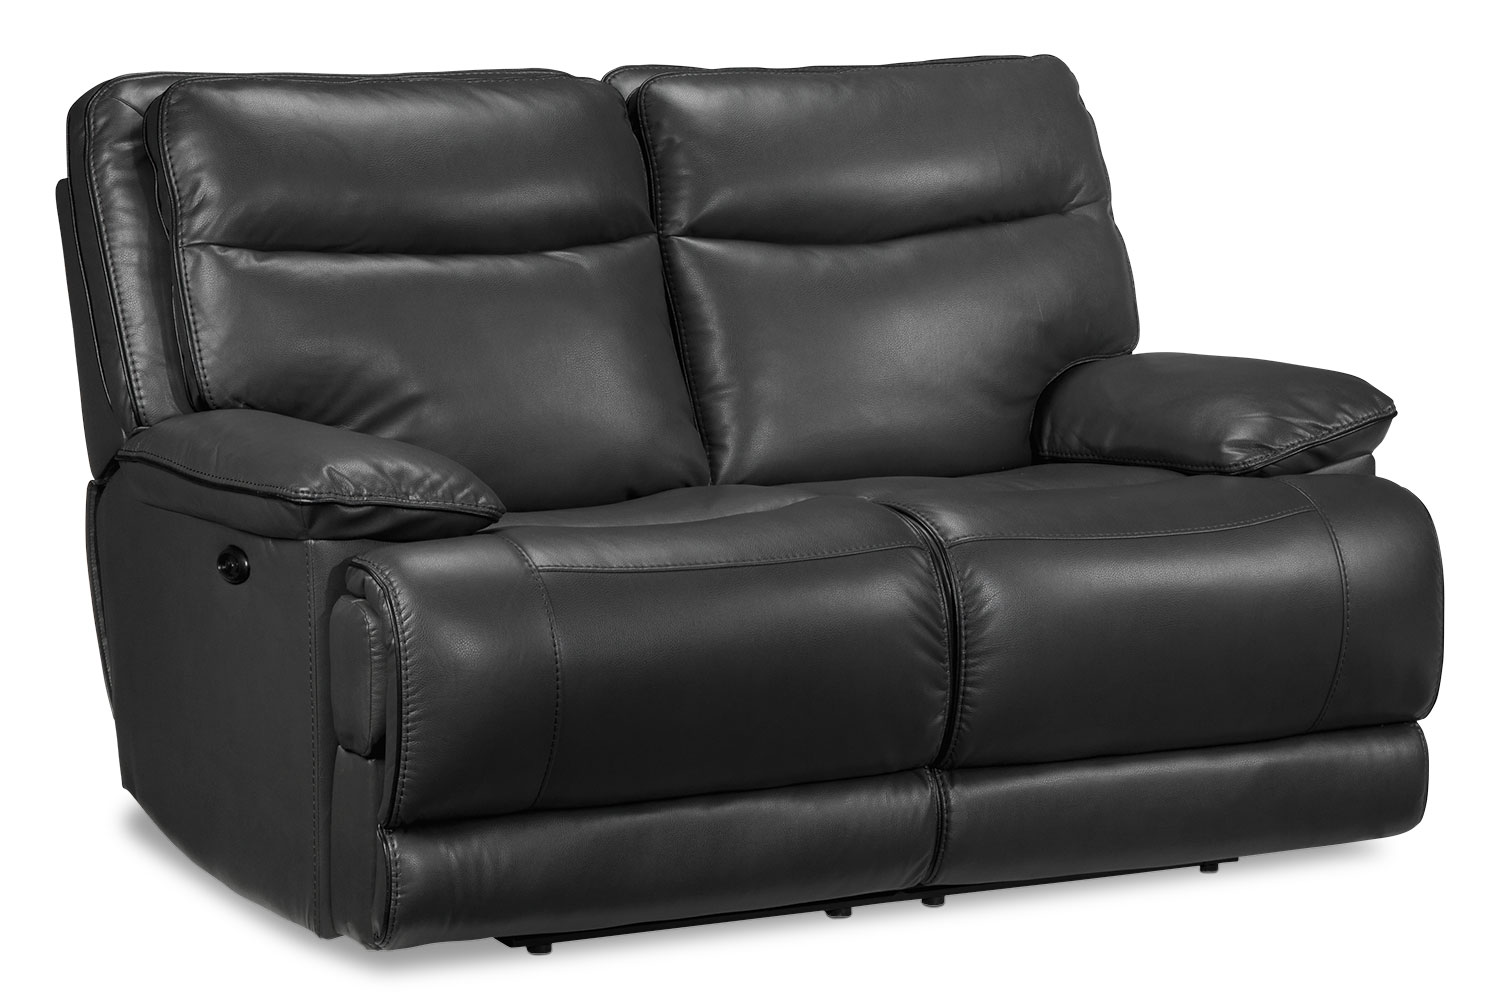 Lanette Power Reclining Loveseat - Smoke Grey